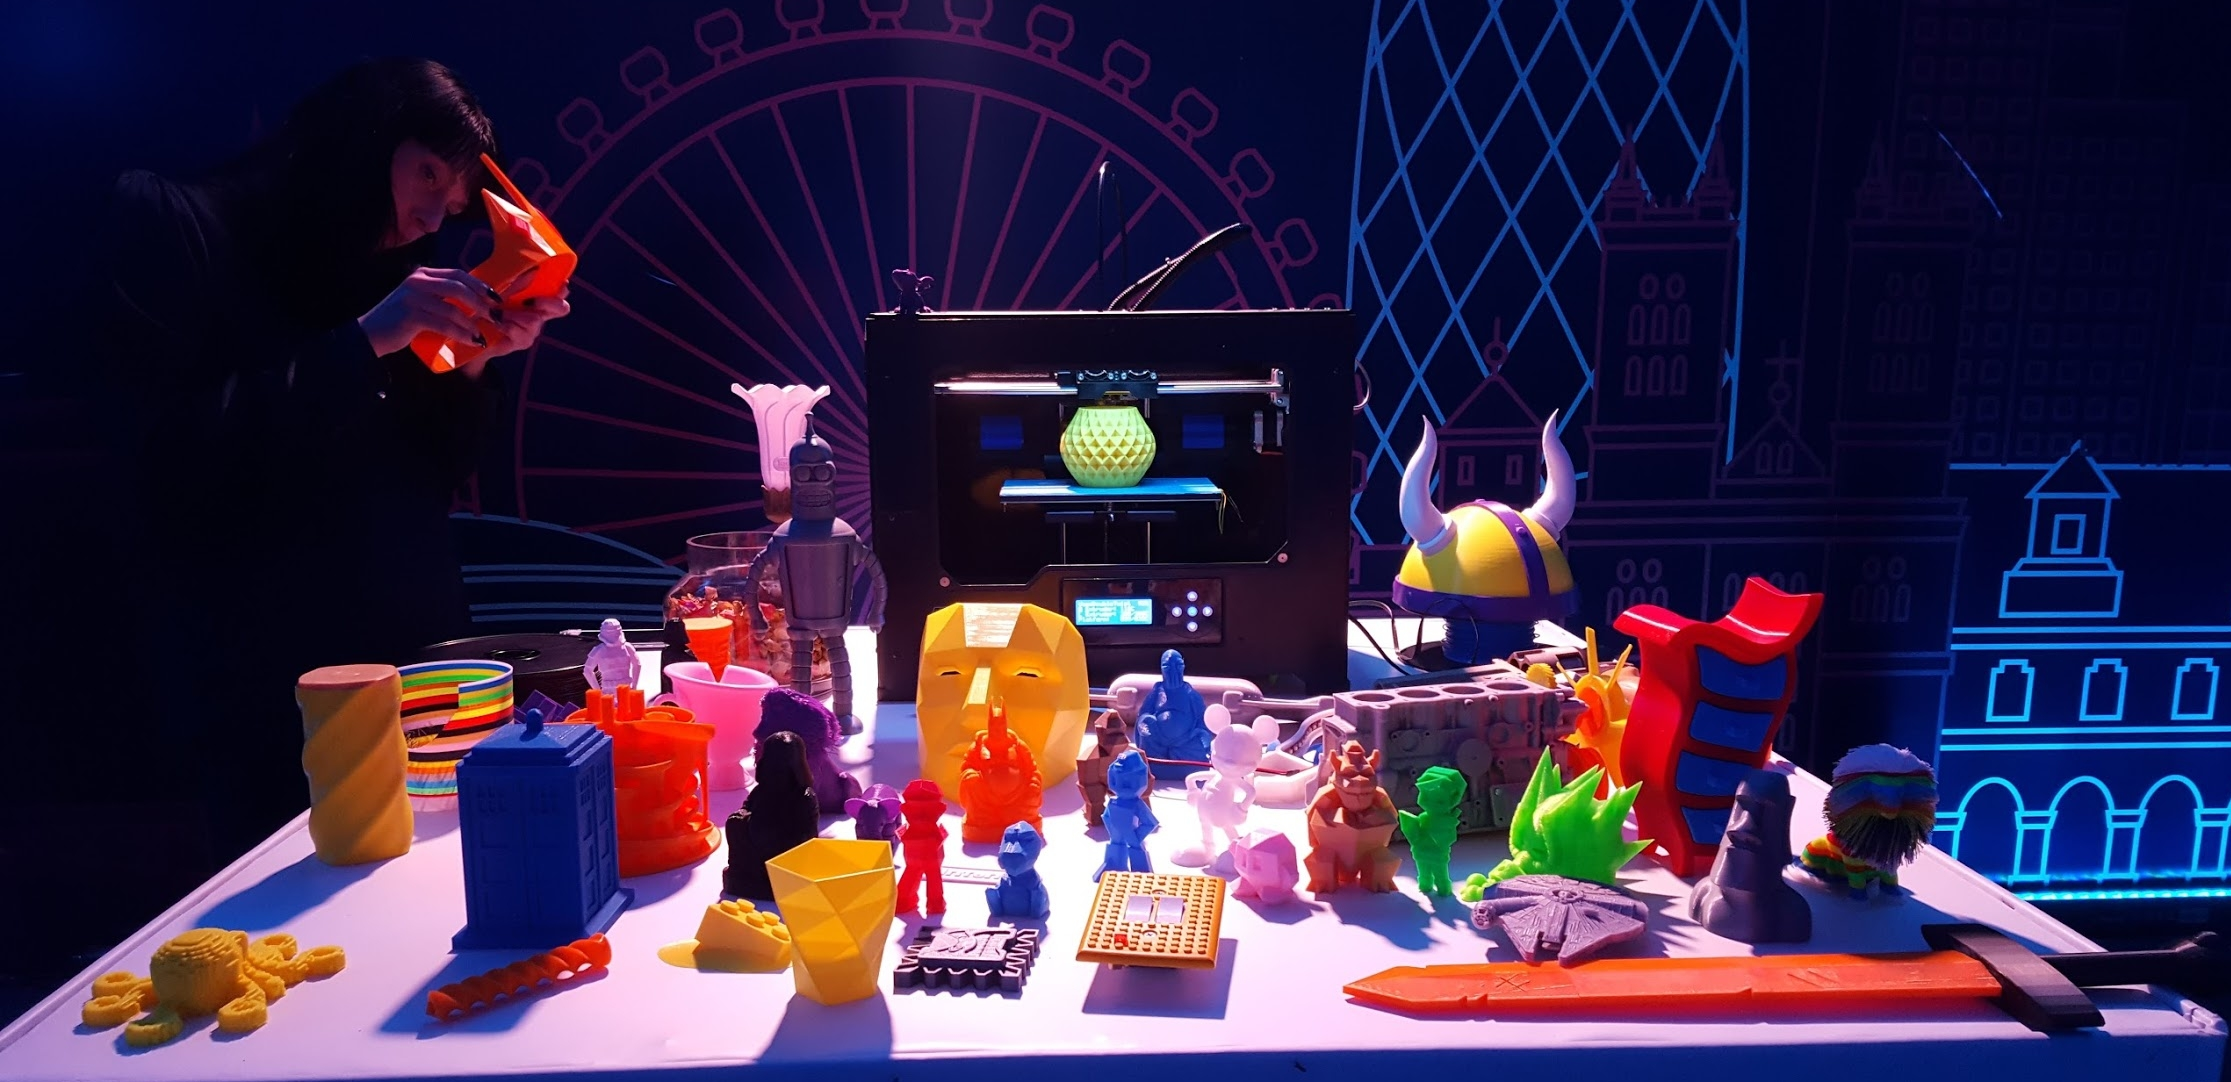 3D-printed items from the #3Dprint365 collection